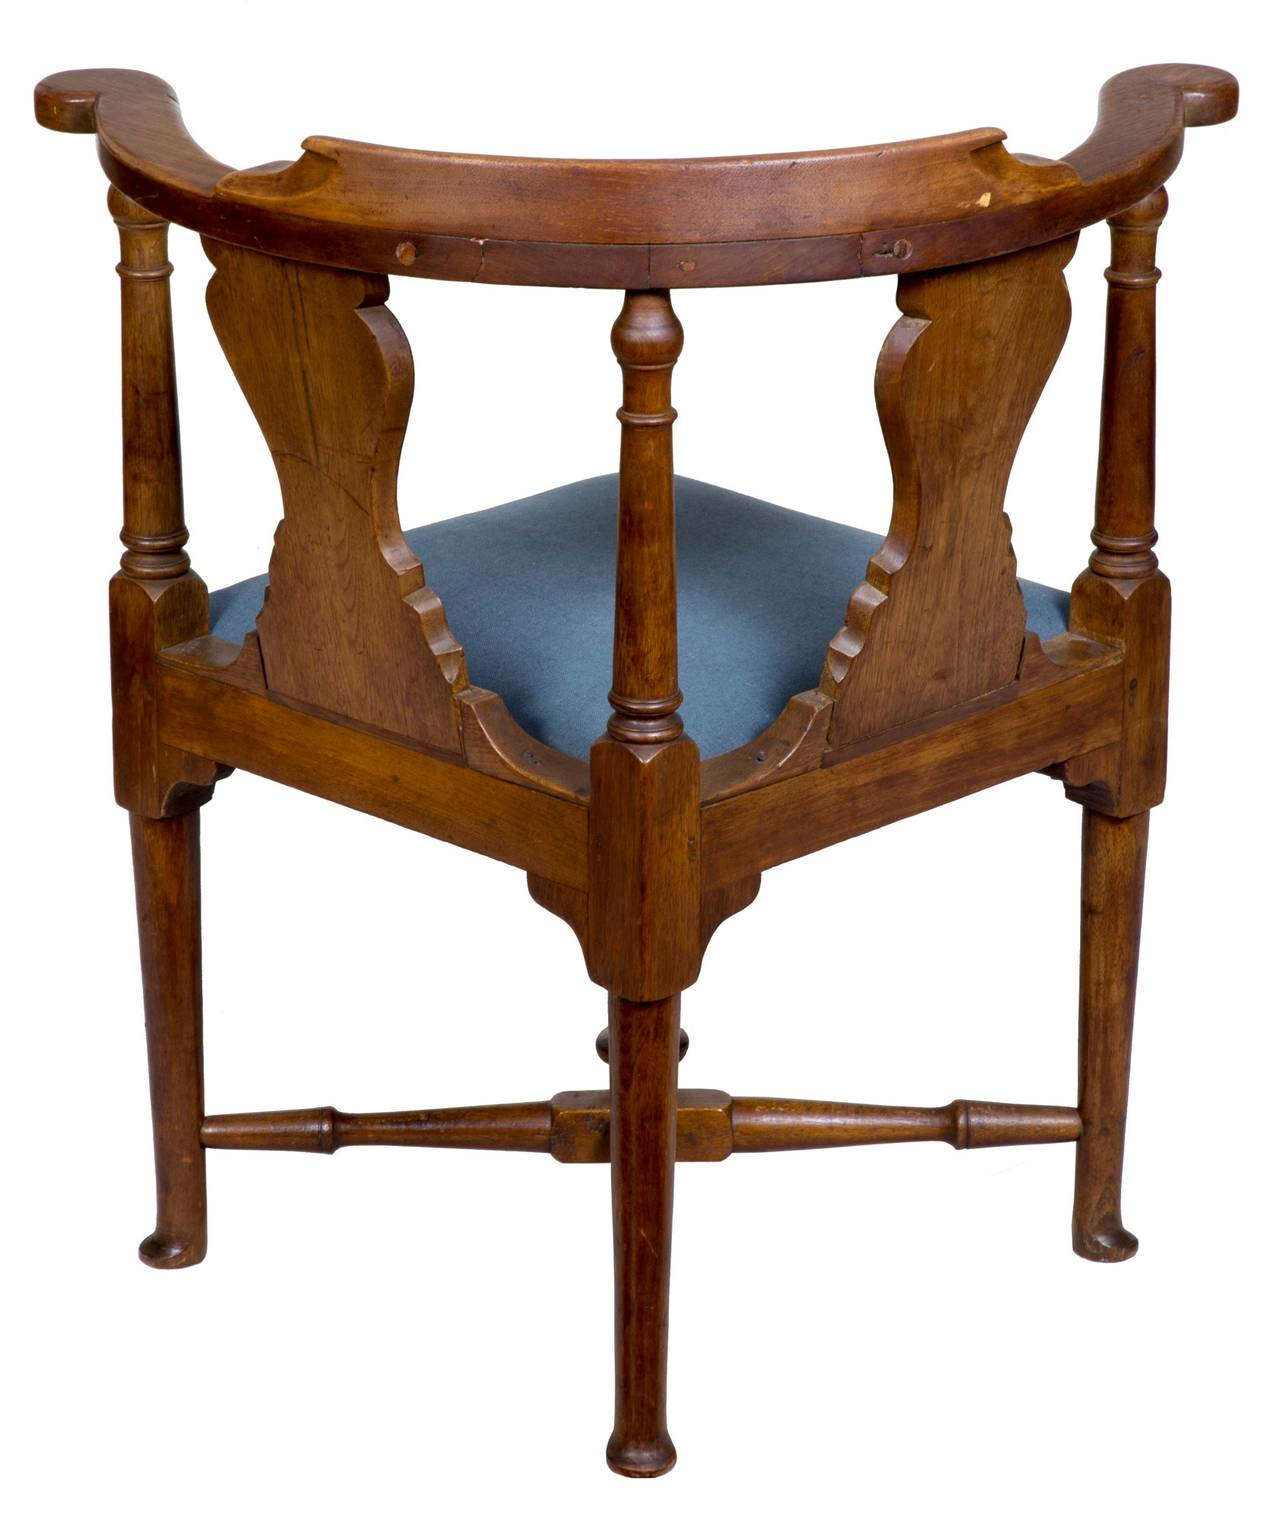 Early Queen Anne Walnut Corner Chair Massachusetts circa 1750